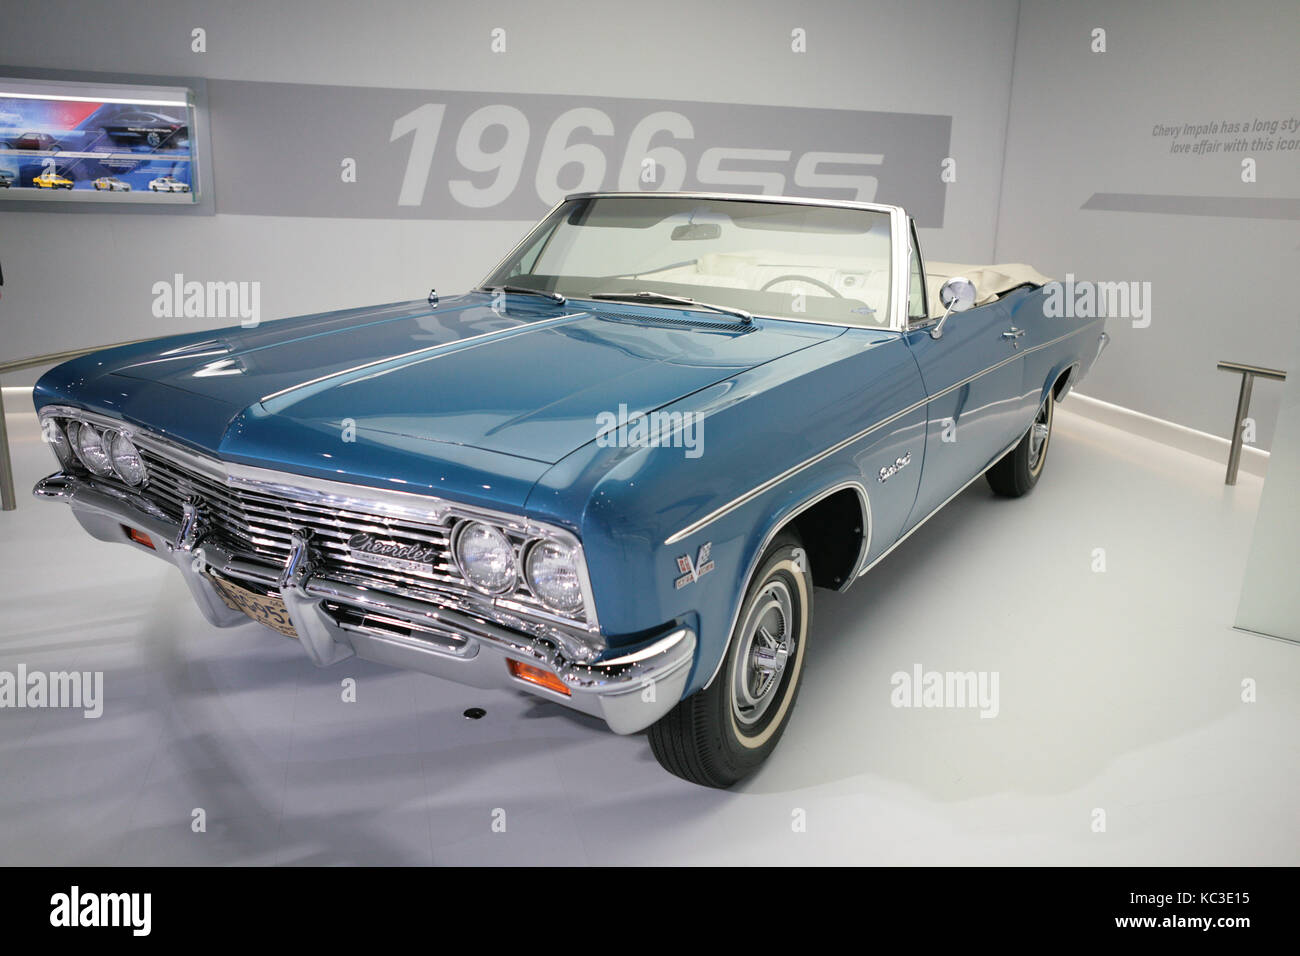 Retro Muscle Car On Nyc Auto Show Stock Photo Alamy - Car show nyc